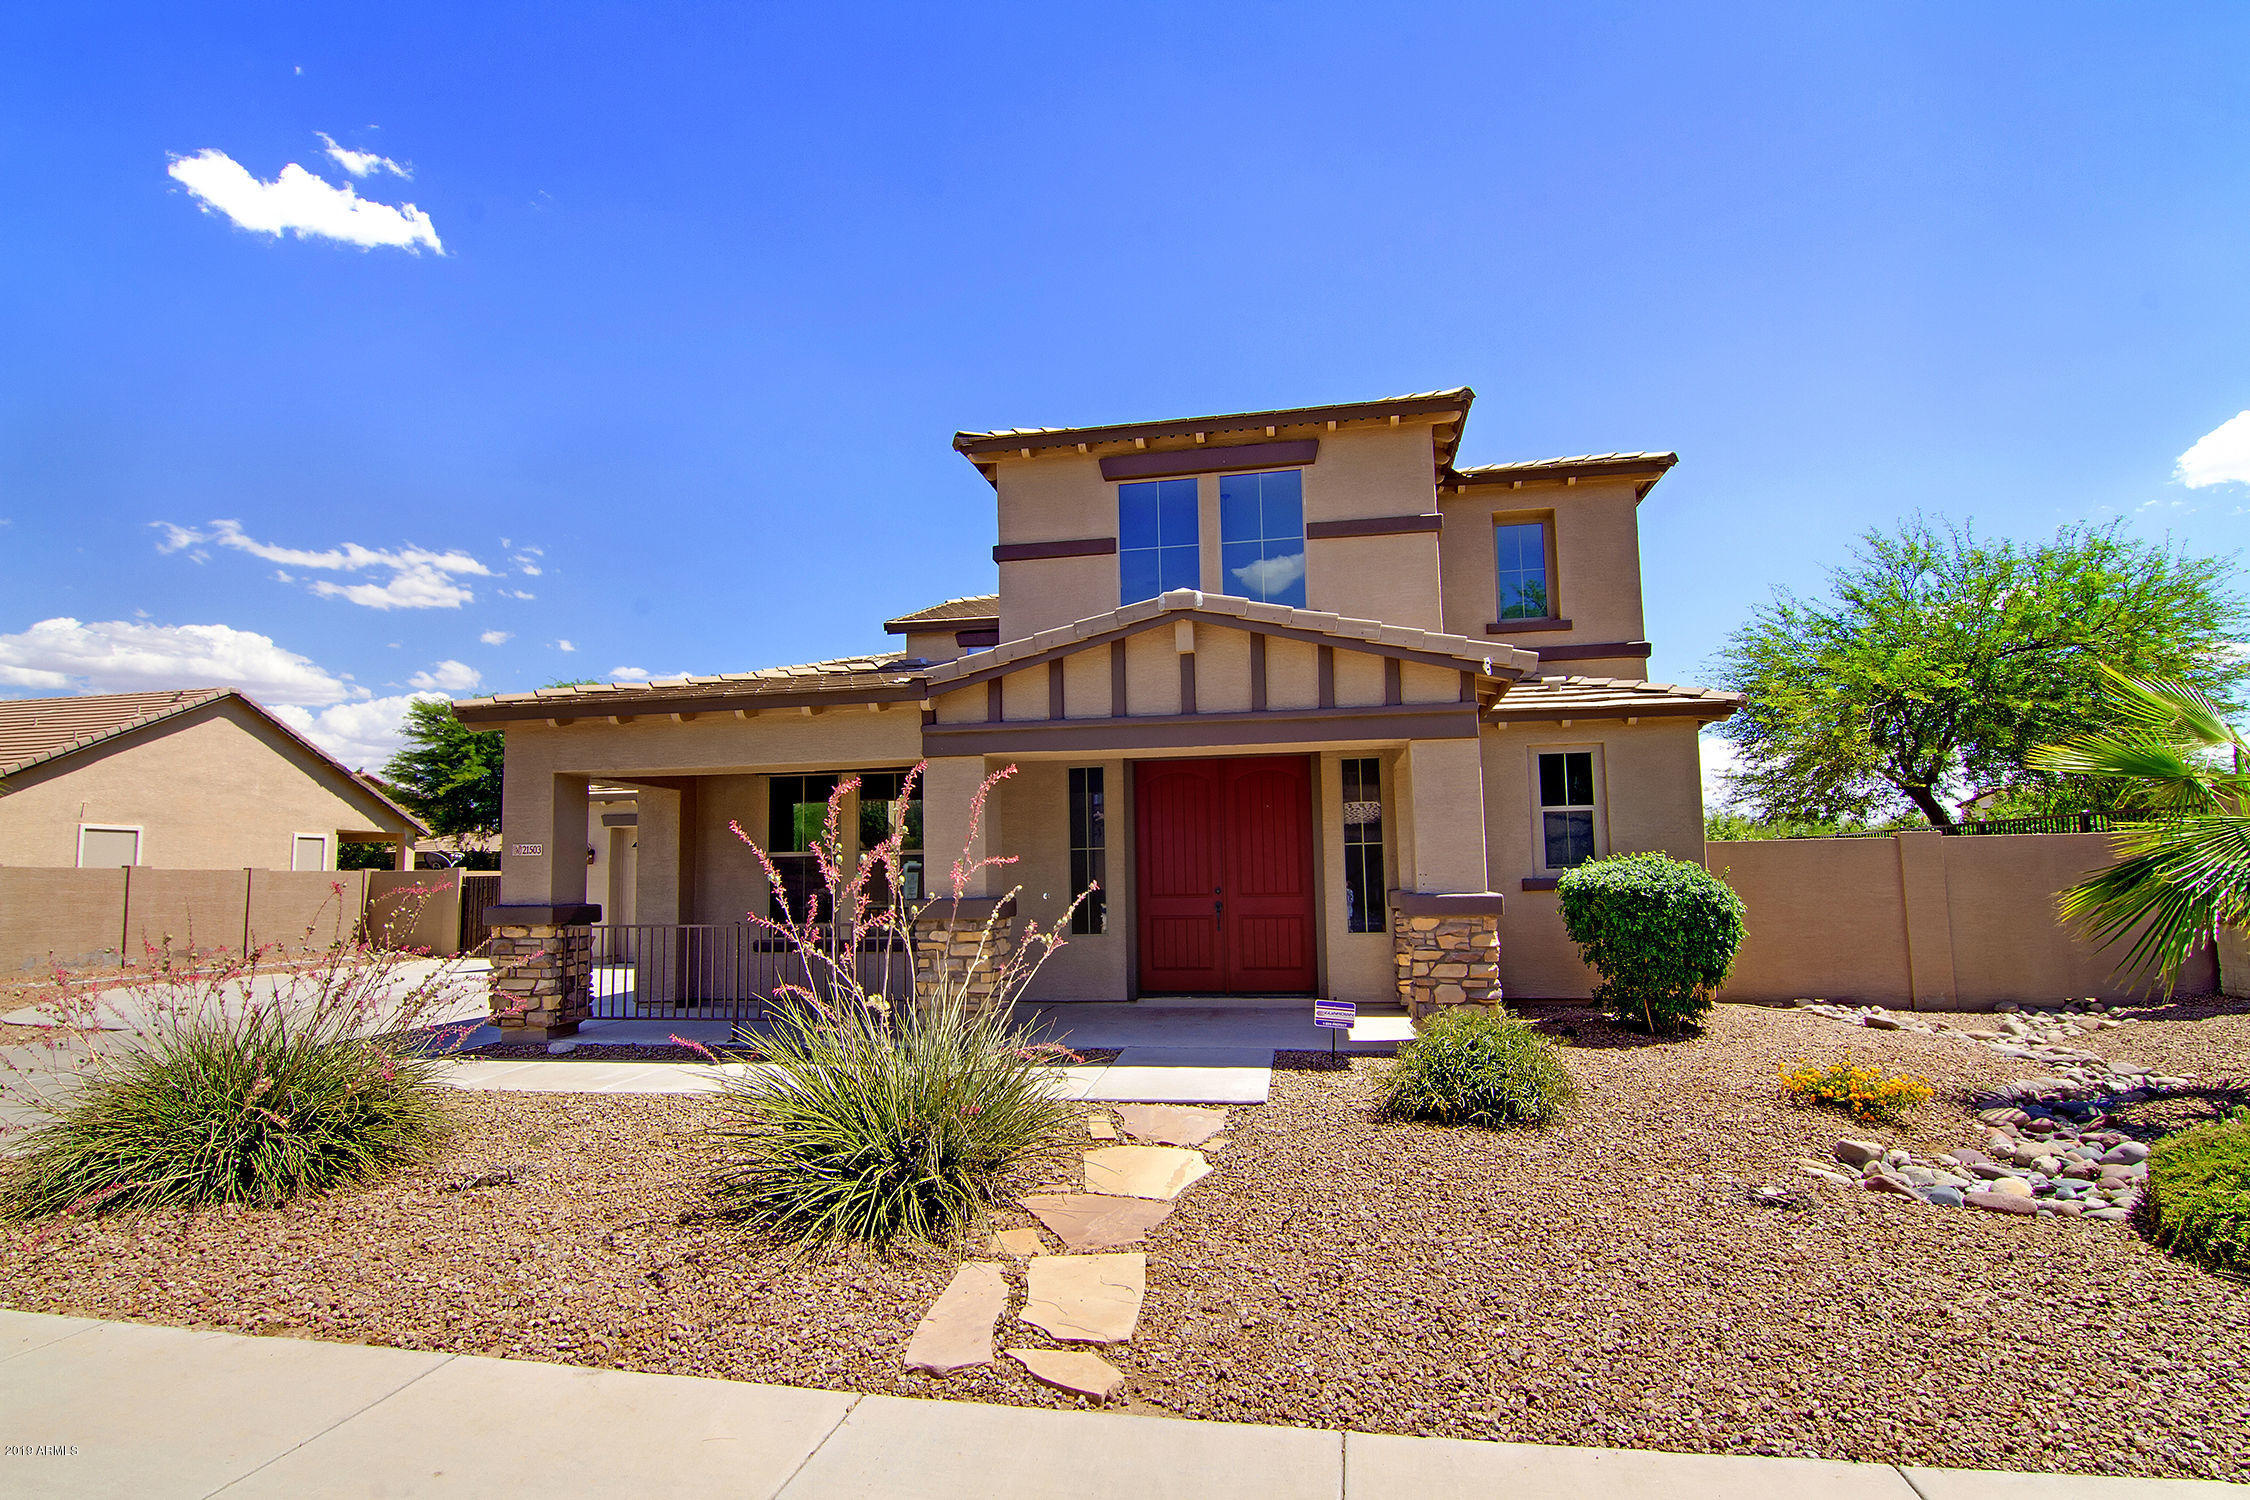 Twins & Co  Realty | Queen Creek